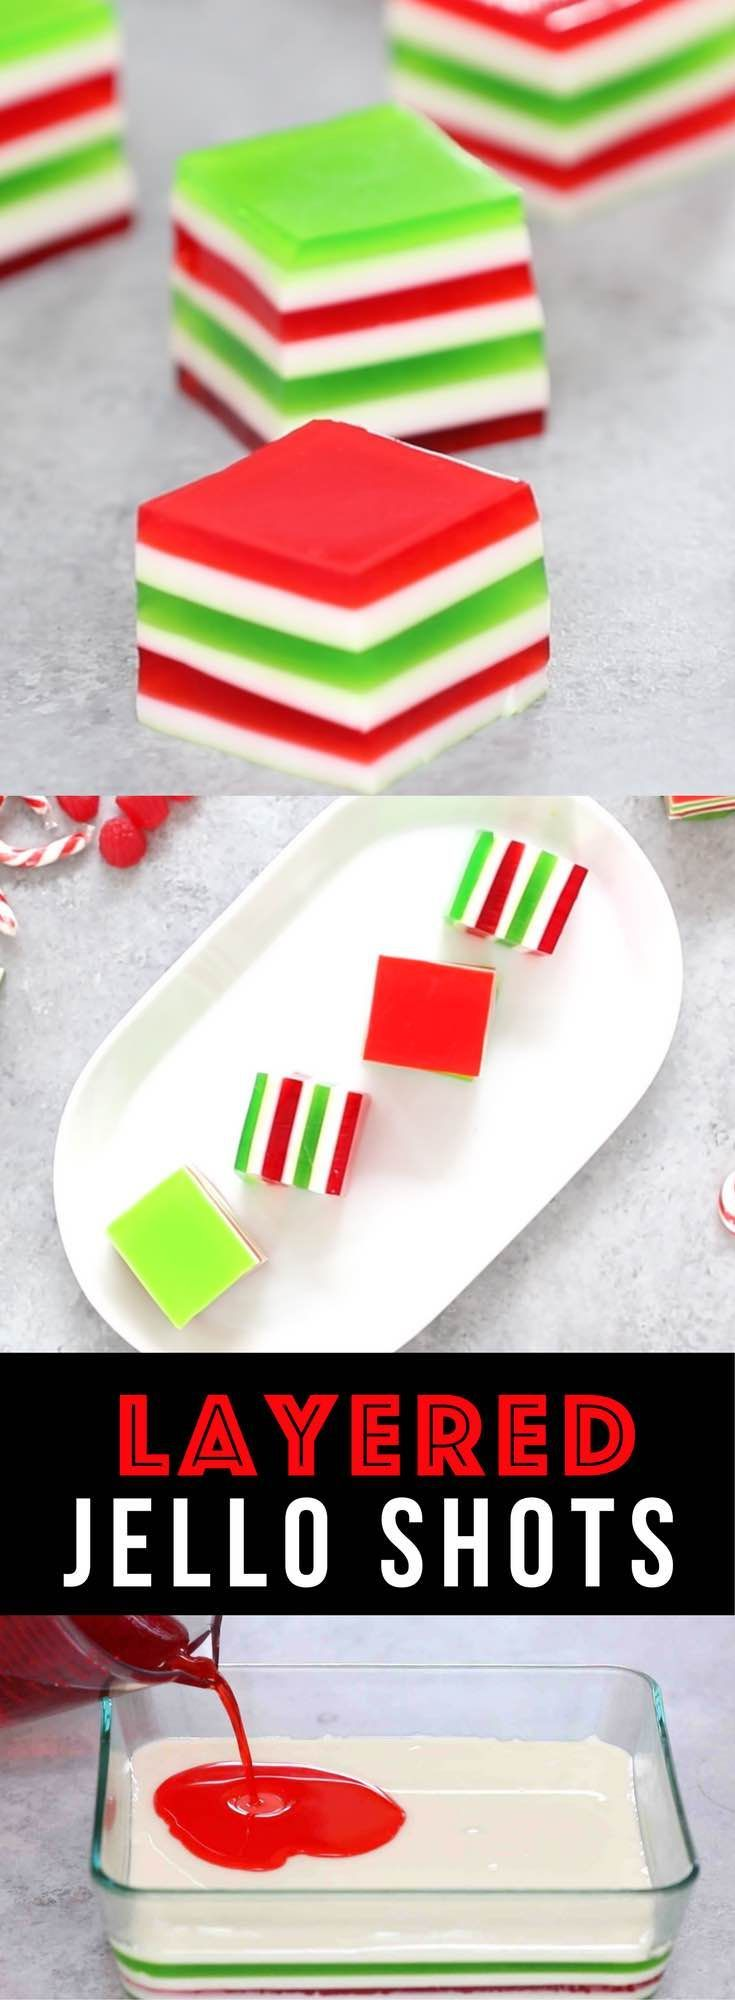 Easy Layered Jello Shots – An easy and beautiful dessert spiked with vodka for a special party! Smooth and creamy Jello shots with bright red, green and white layers. All you need is a few simple ingredients: gelatin, strawberry and lime jello powder, vodka and condensed milk. So Good! Great for holiday and birthday parties. Easy recipe, party desserts. Finger food. No Bake. Vegetarian. Video recipe. | Tipbuzz.com